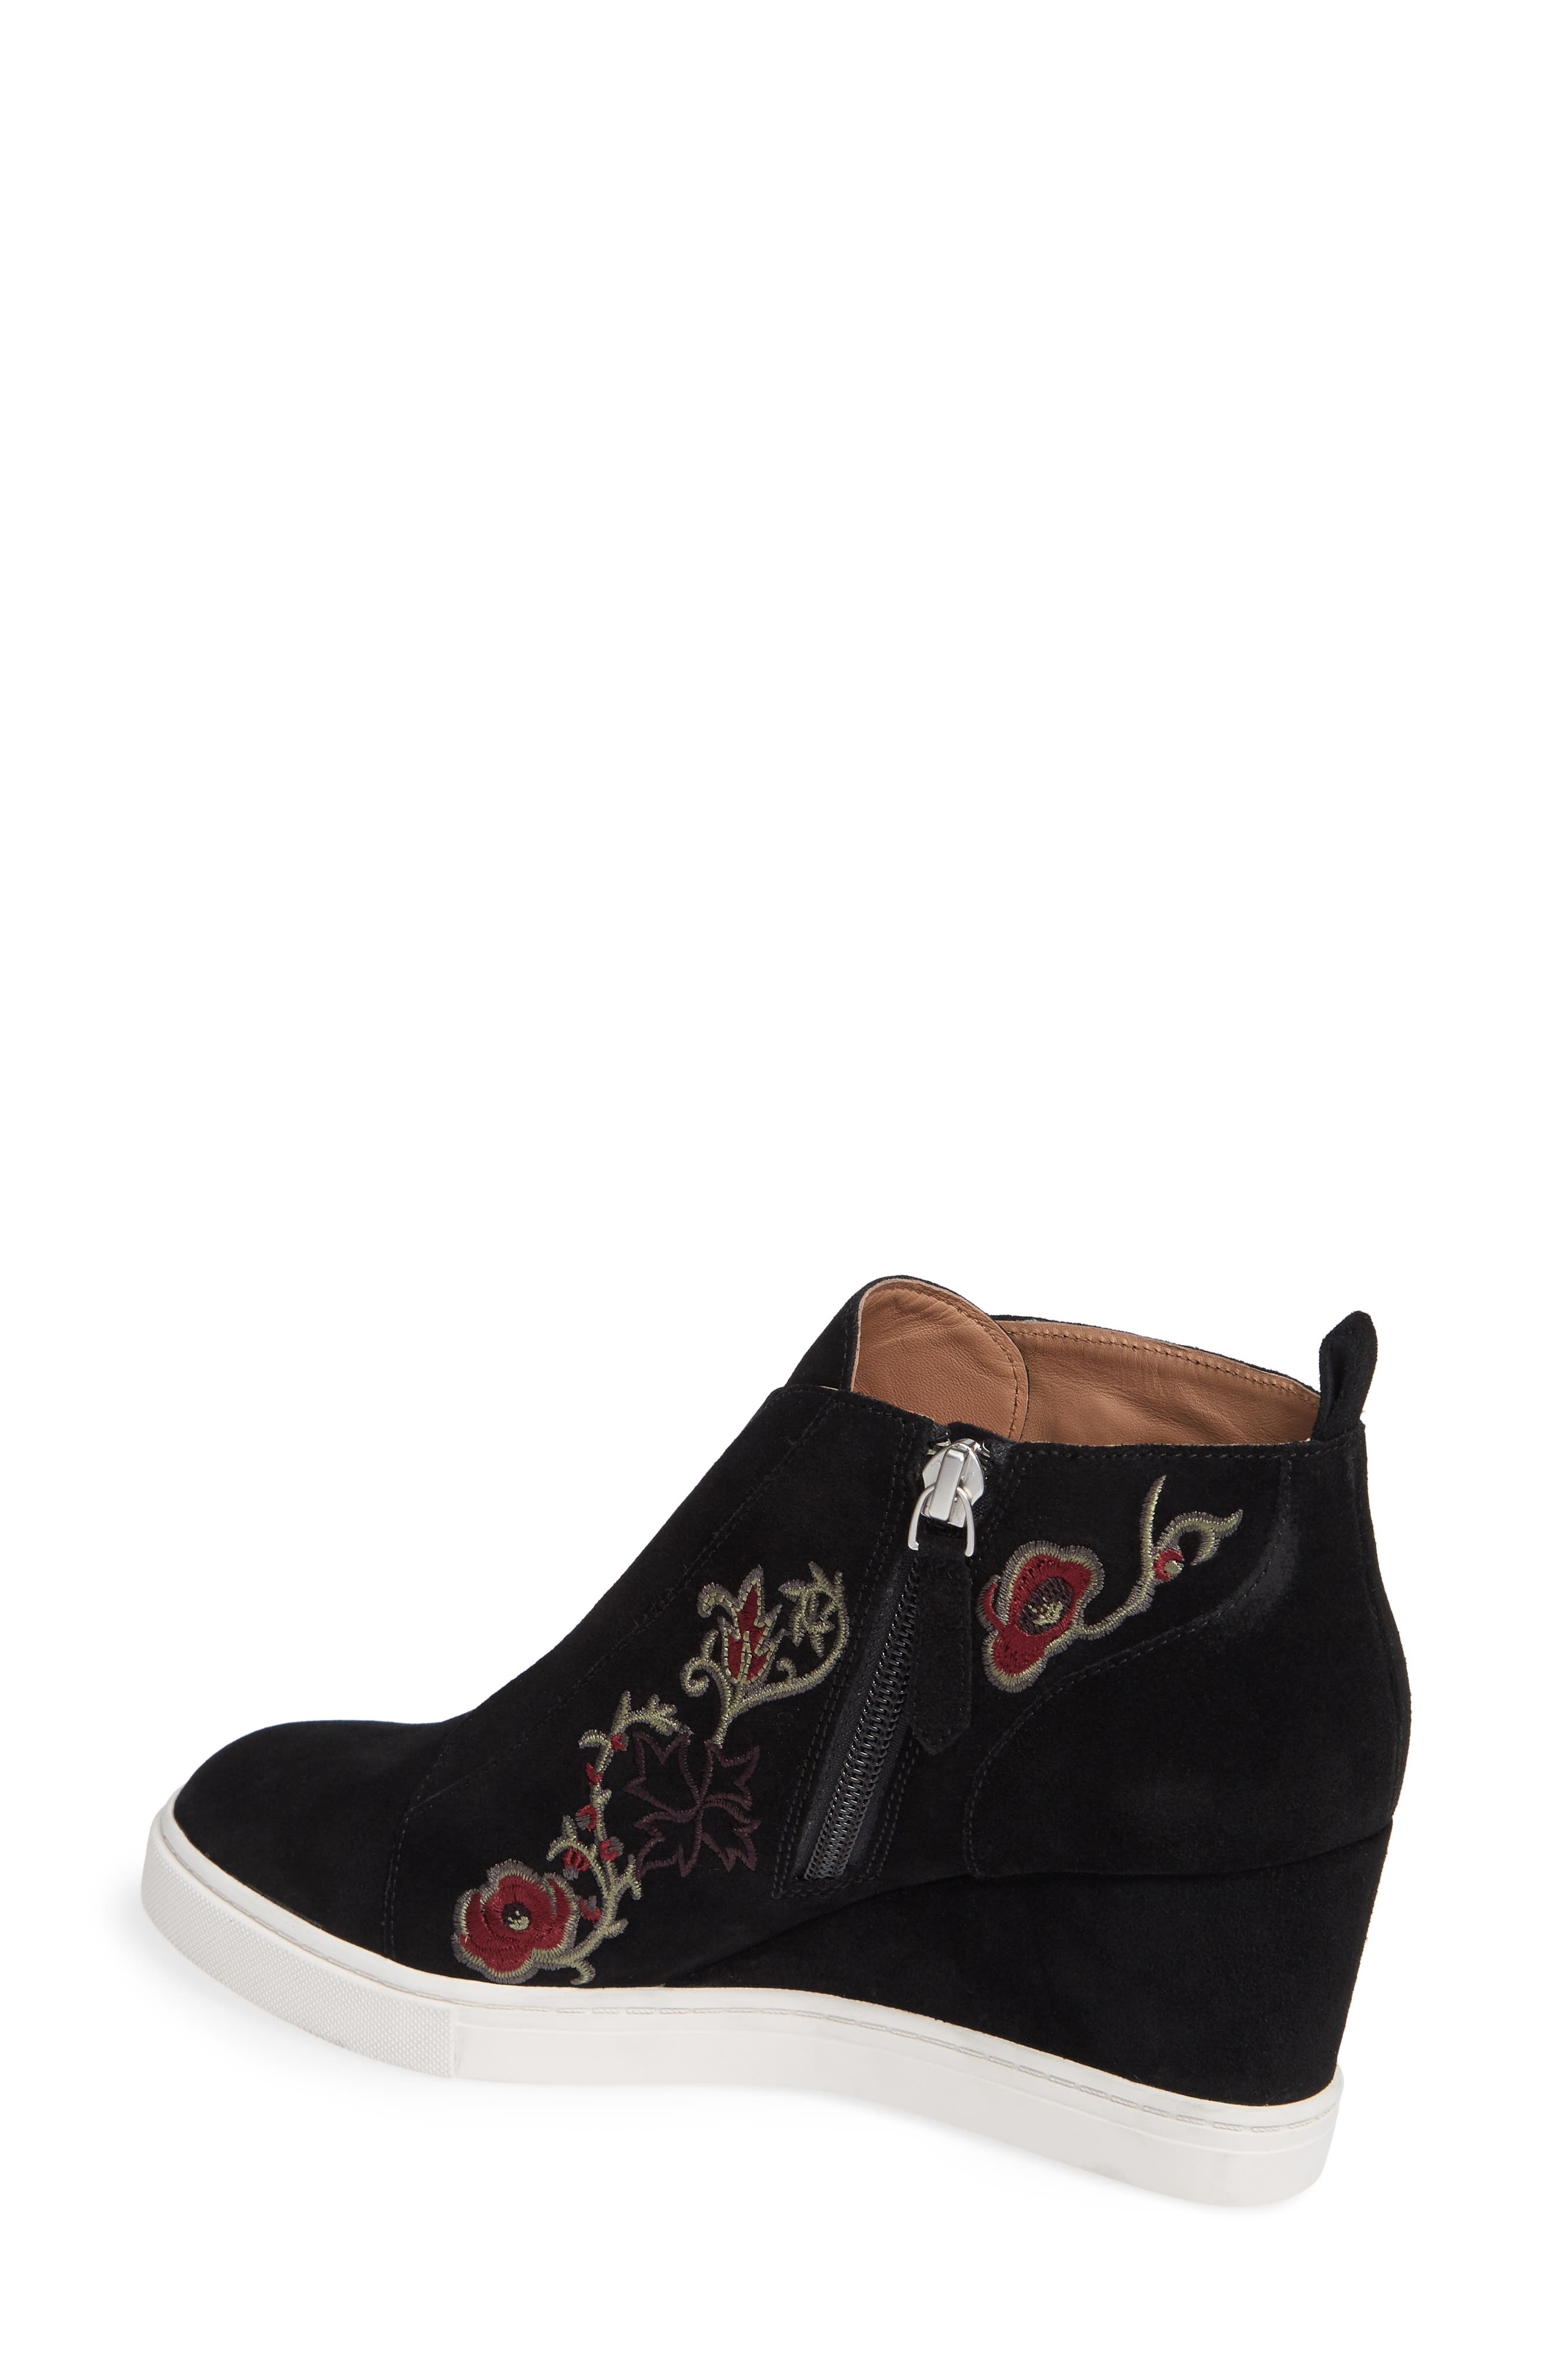 LINEA PAOLO, Felicia II Wedge Bootie, Alternate thumbnail 2, color, BLACK/ BLACK EMBROIDERY SUEDE